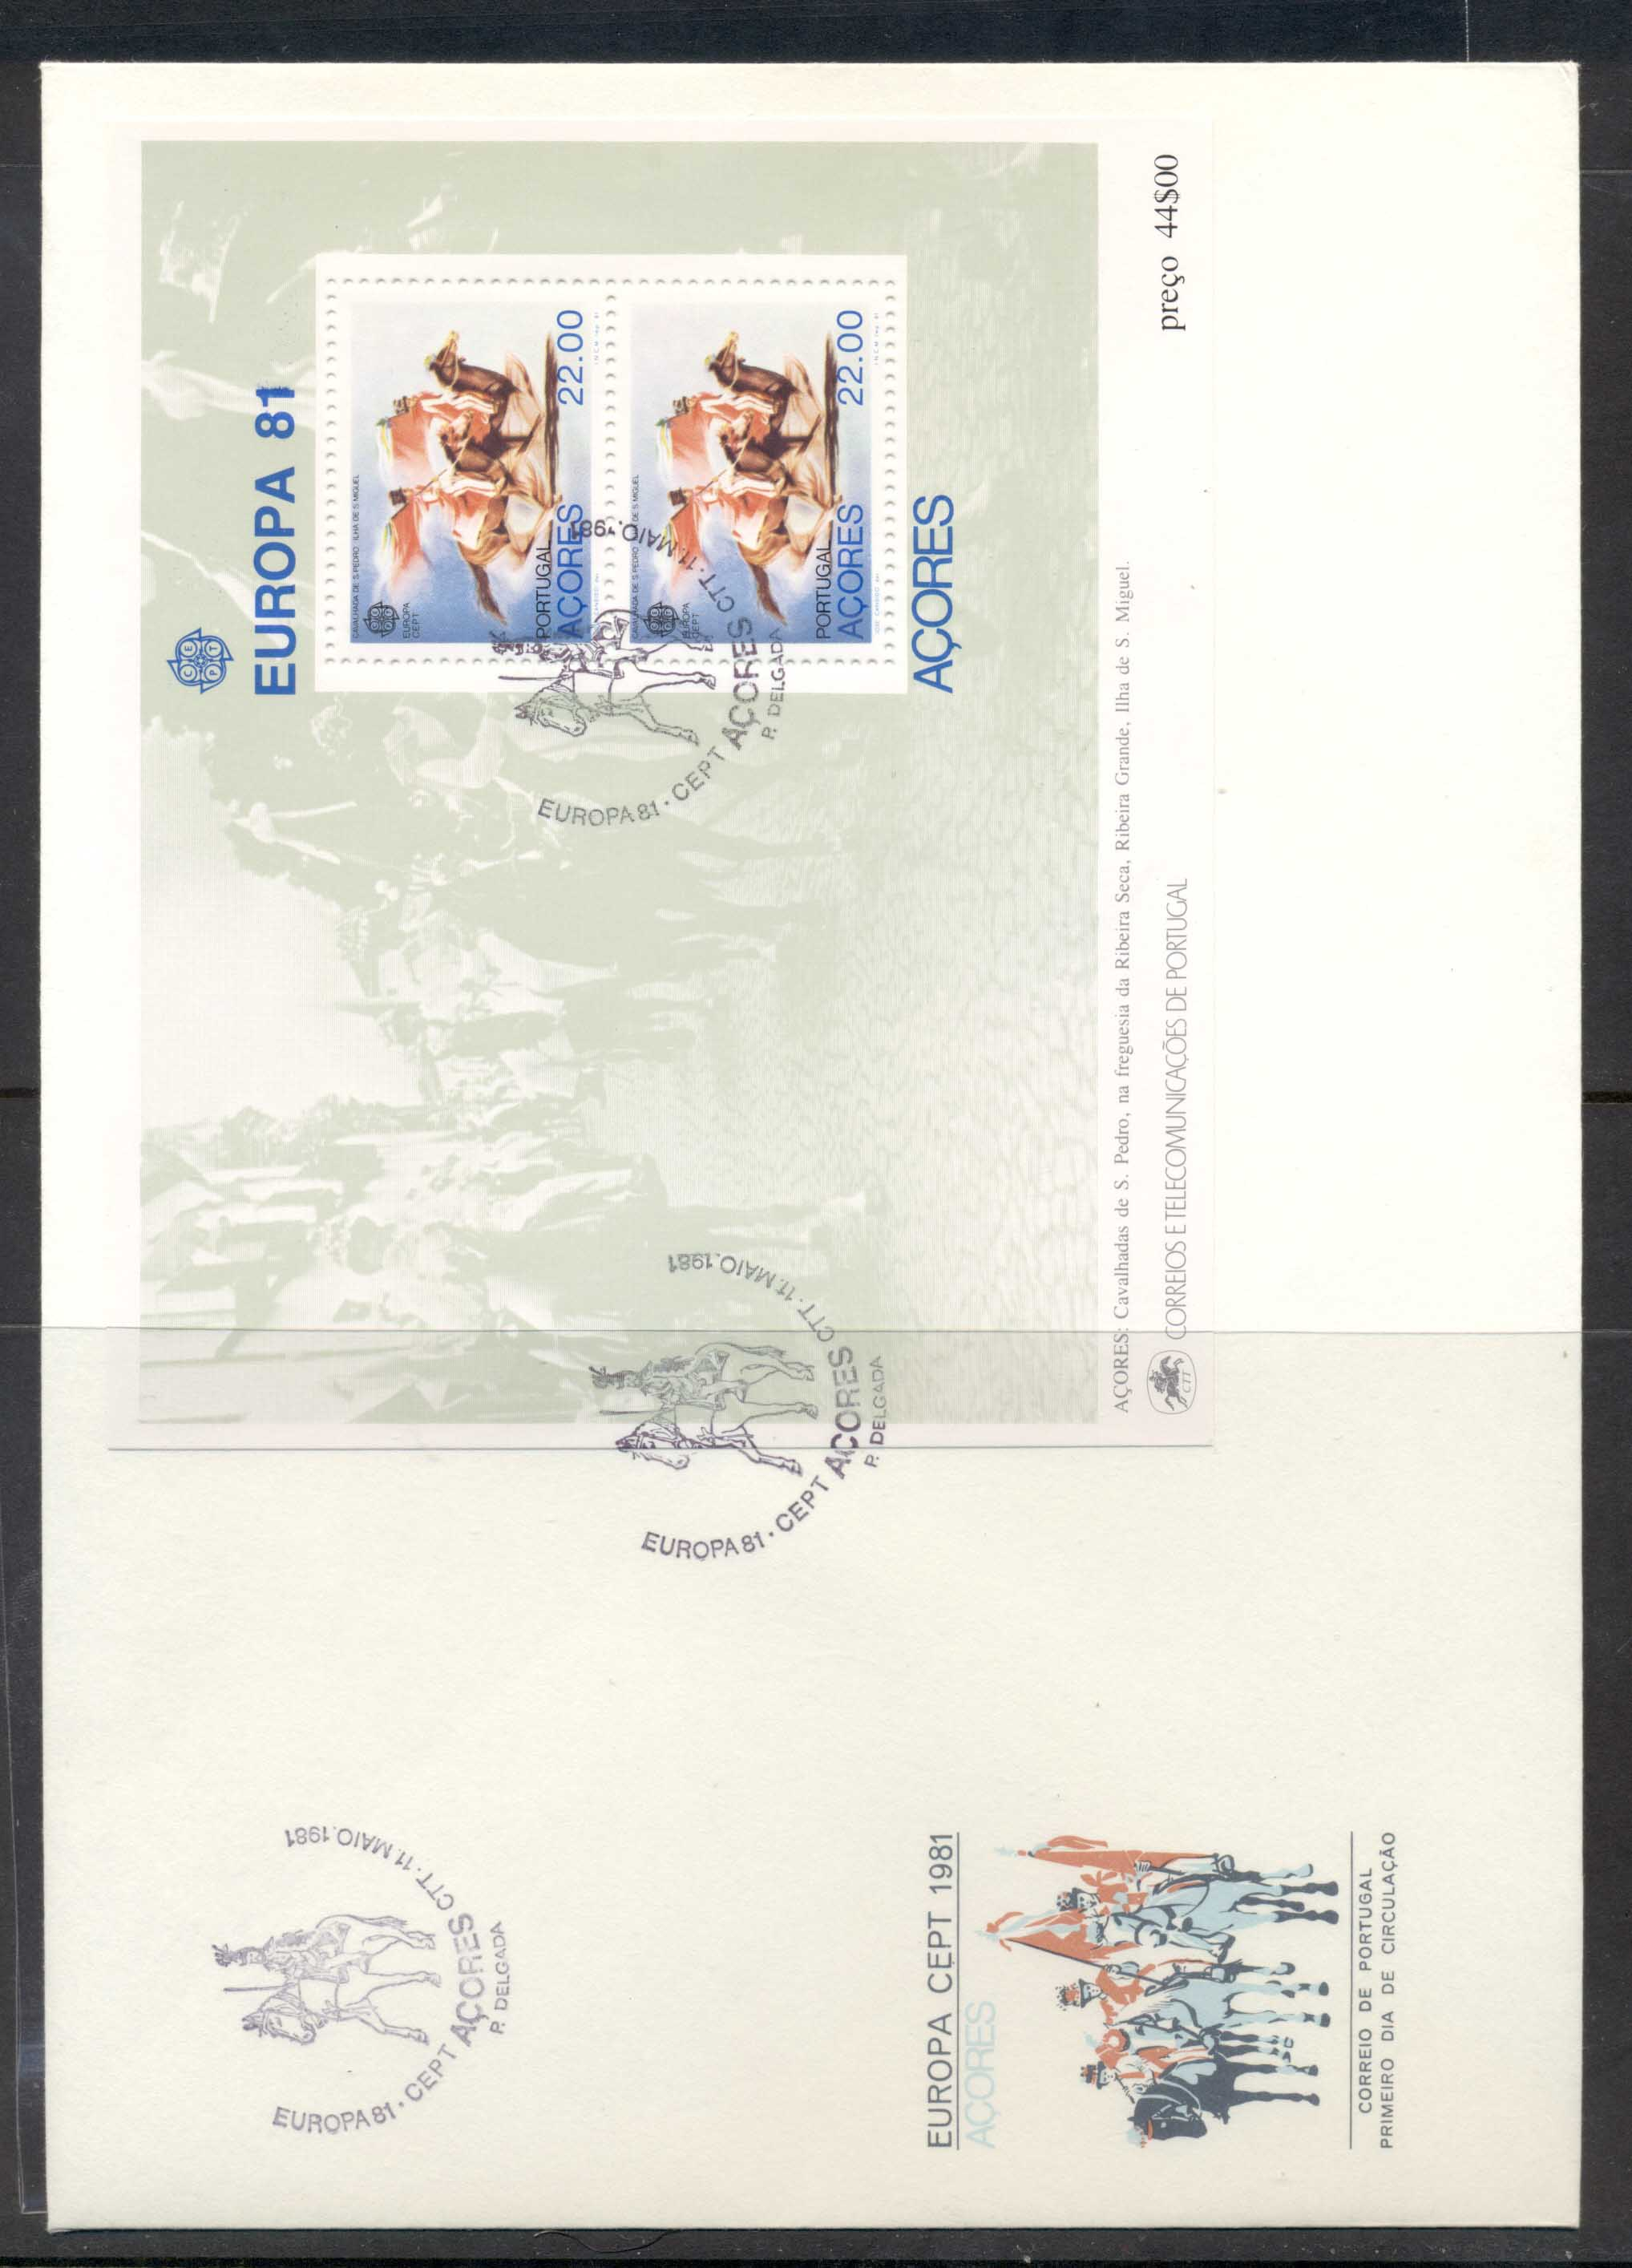 Azores 1981 Europa Folklore XLMS FDC